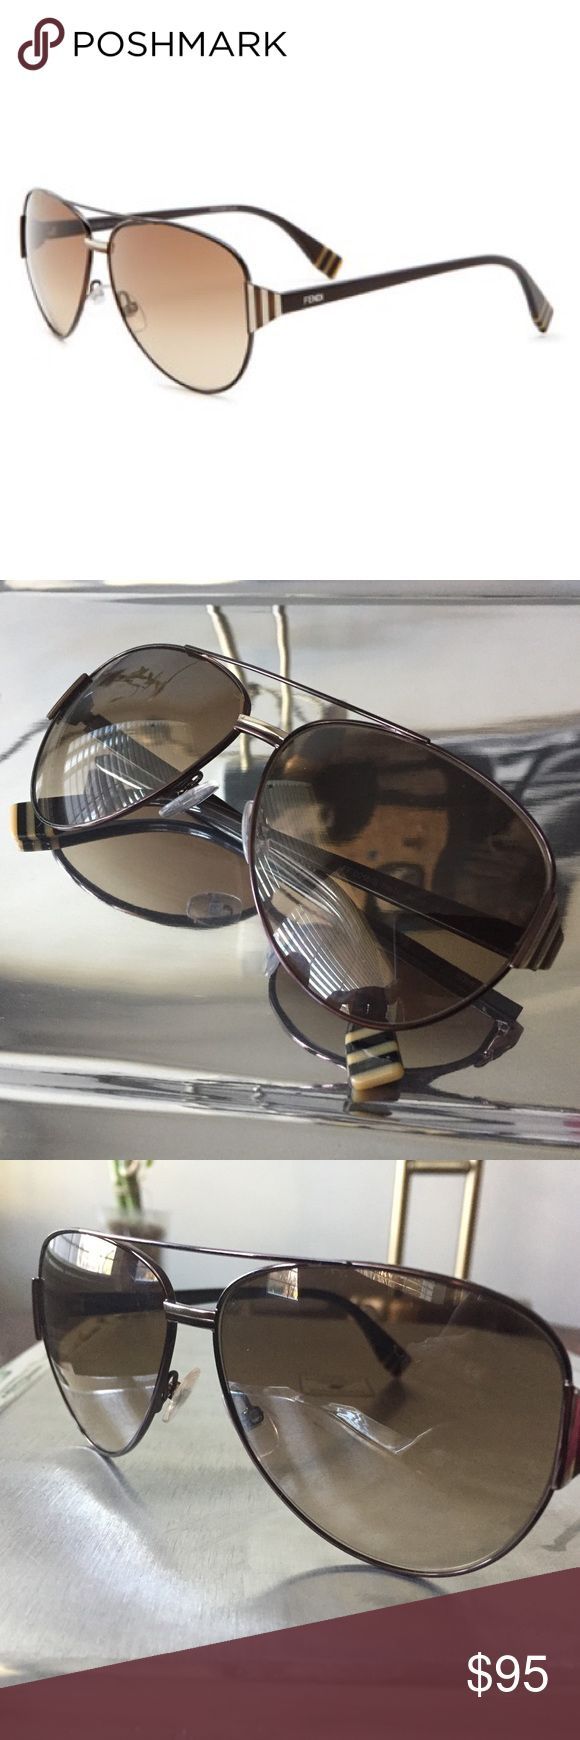 Fendi // 0018 Women's Aviator Sunglasses The Fendi 0018 sunglasses are sleek oversized metal aviators featuring the Fendi logo on the temples. High quality gradient lenses provide 100% UV protection. Color is brown. No scratches in perfect condition do not have sunglasses case. Fendi Accessories Sunglasses